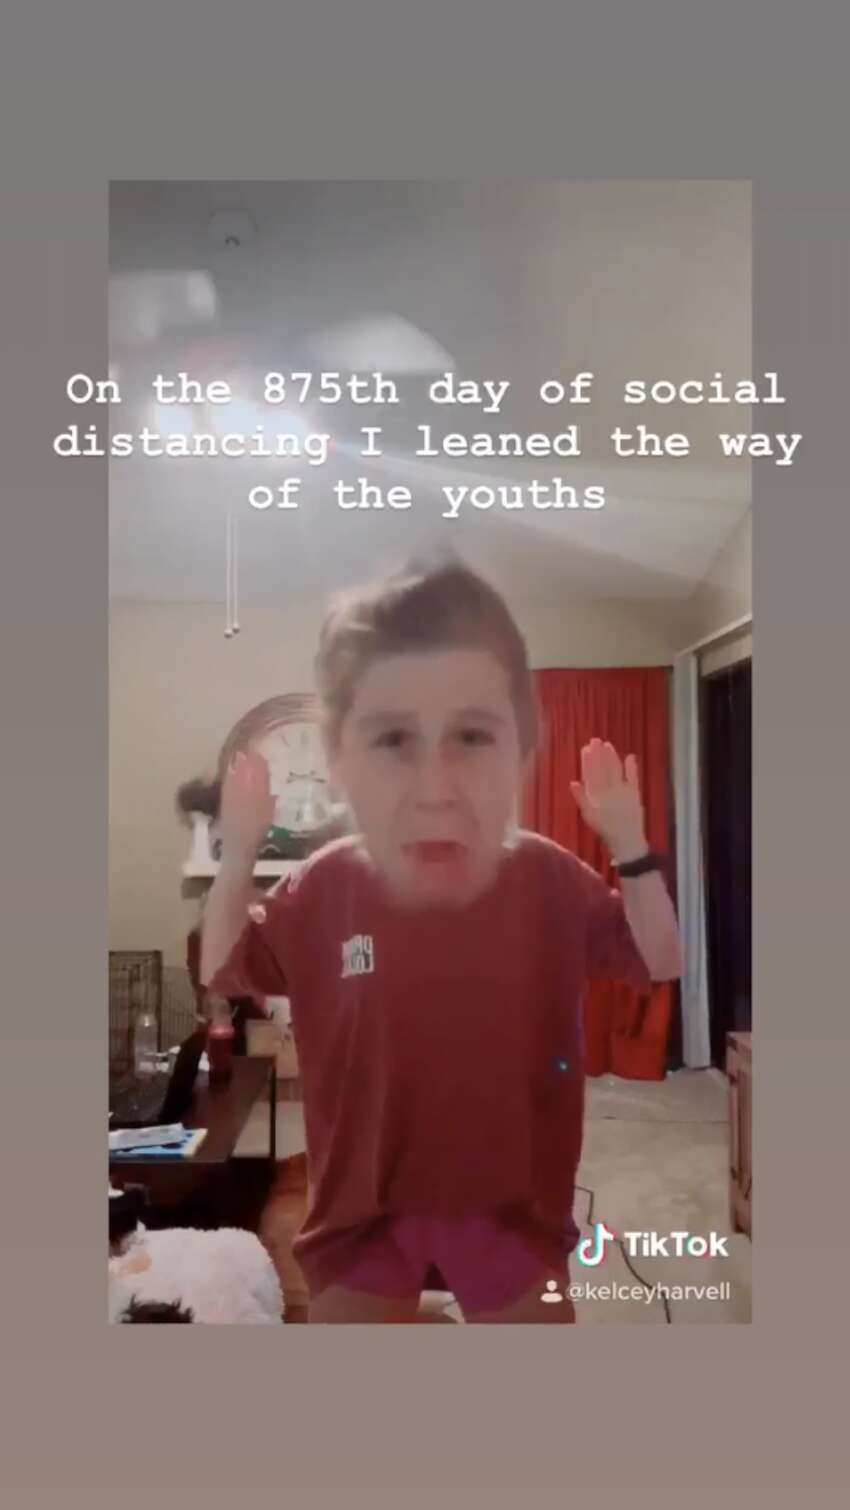 Trying a new hobby and participating in one of many popular trends on TikTok,